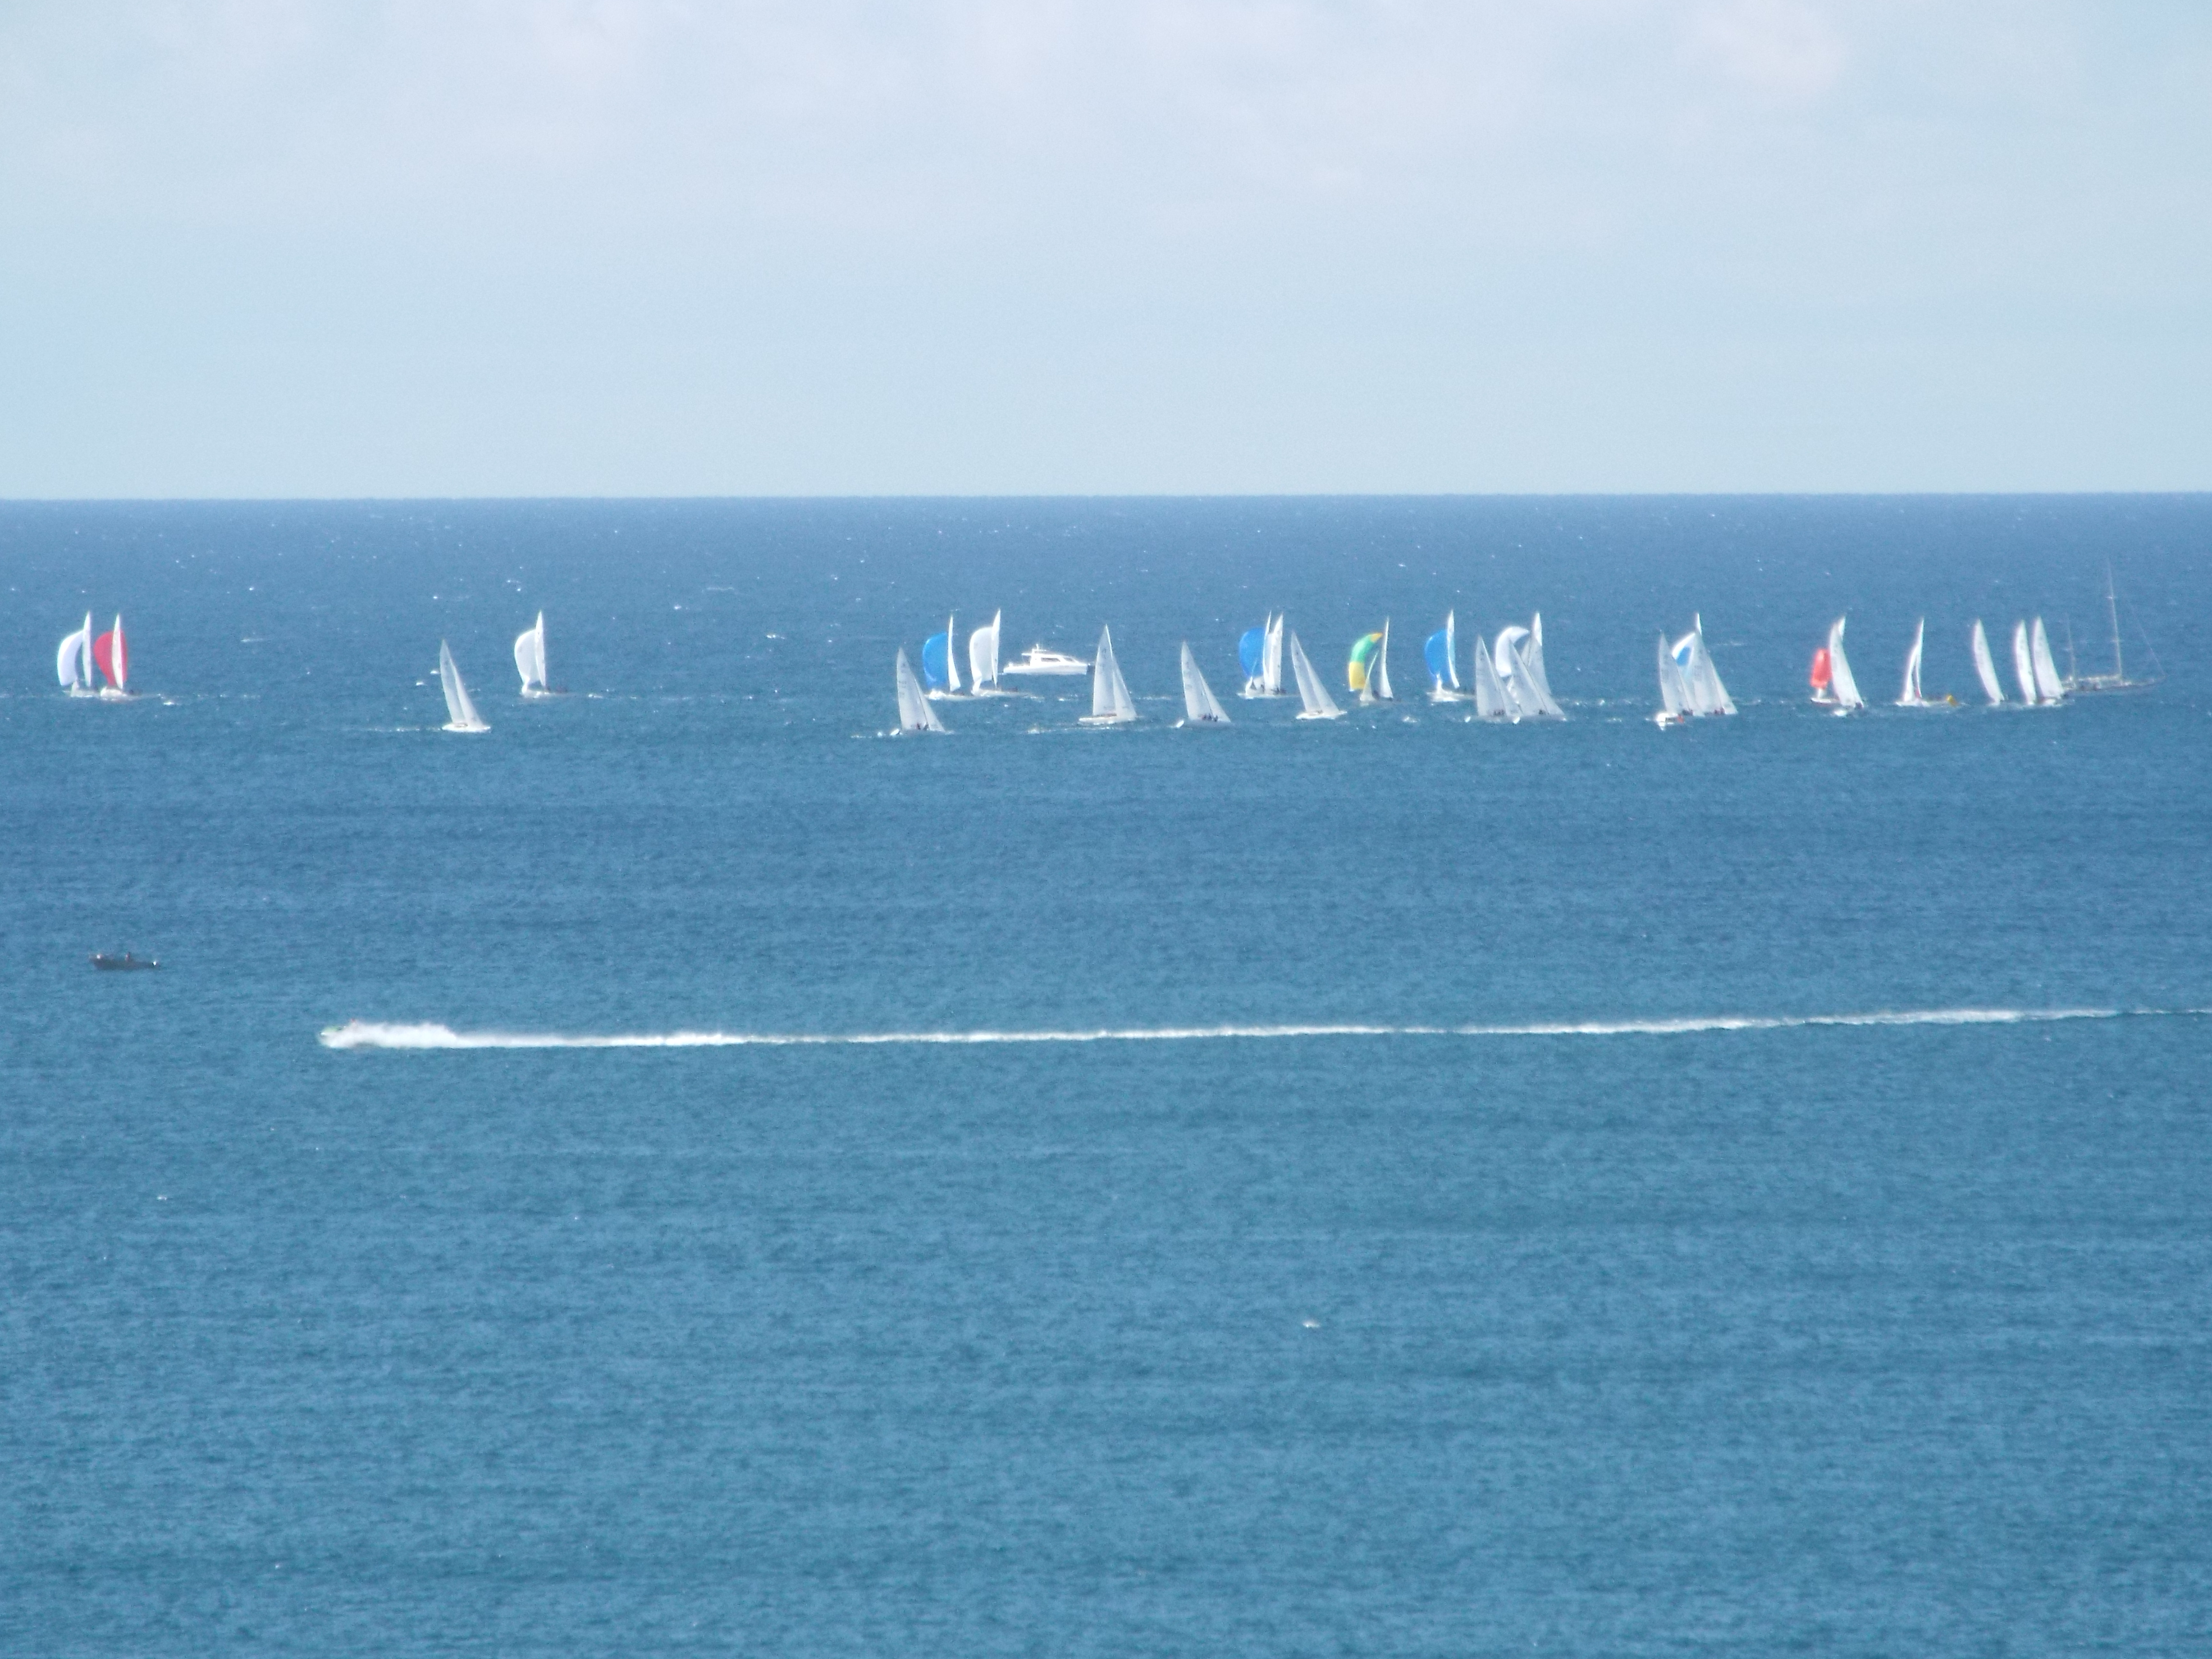 Off shore racing